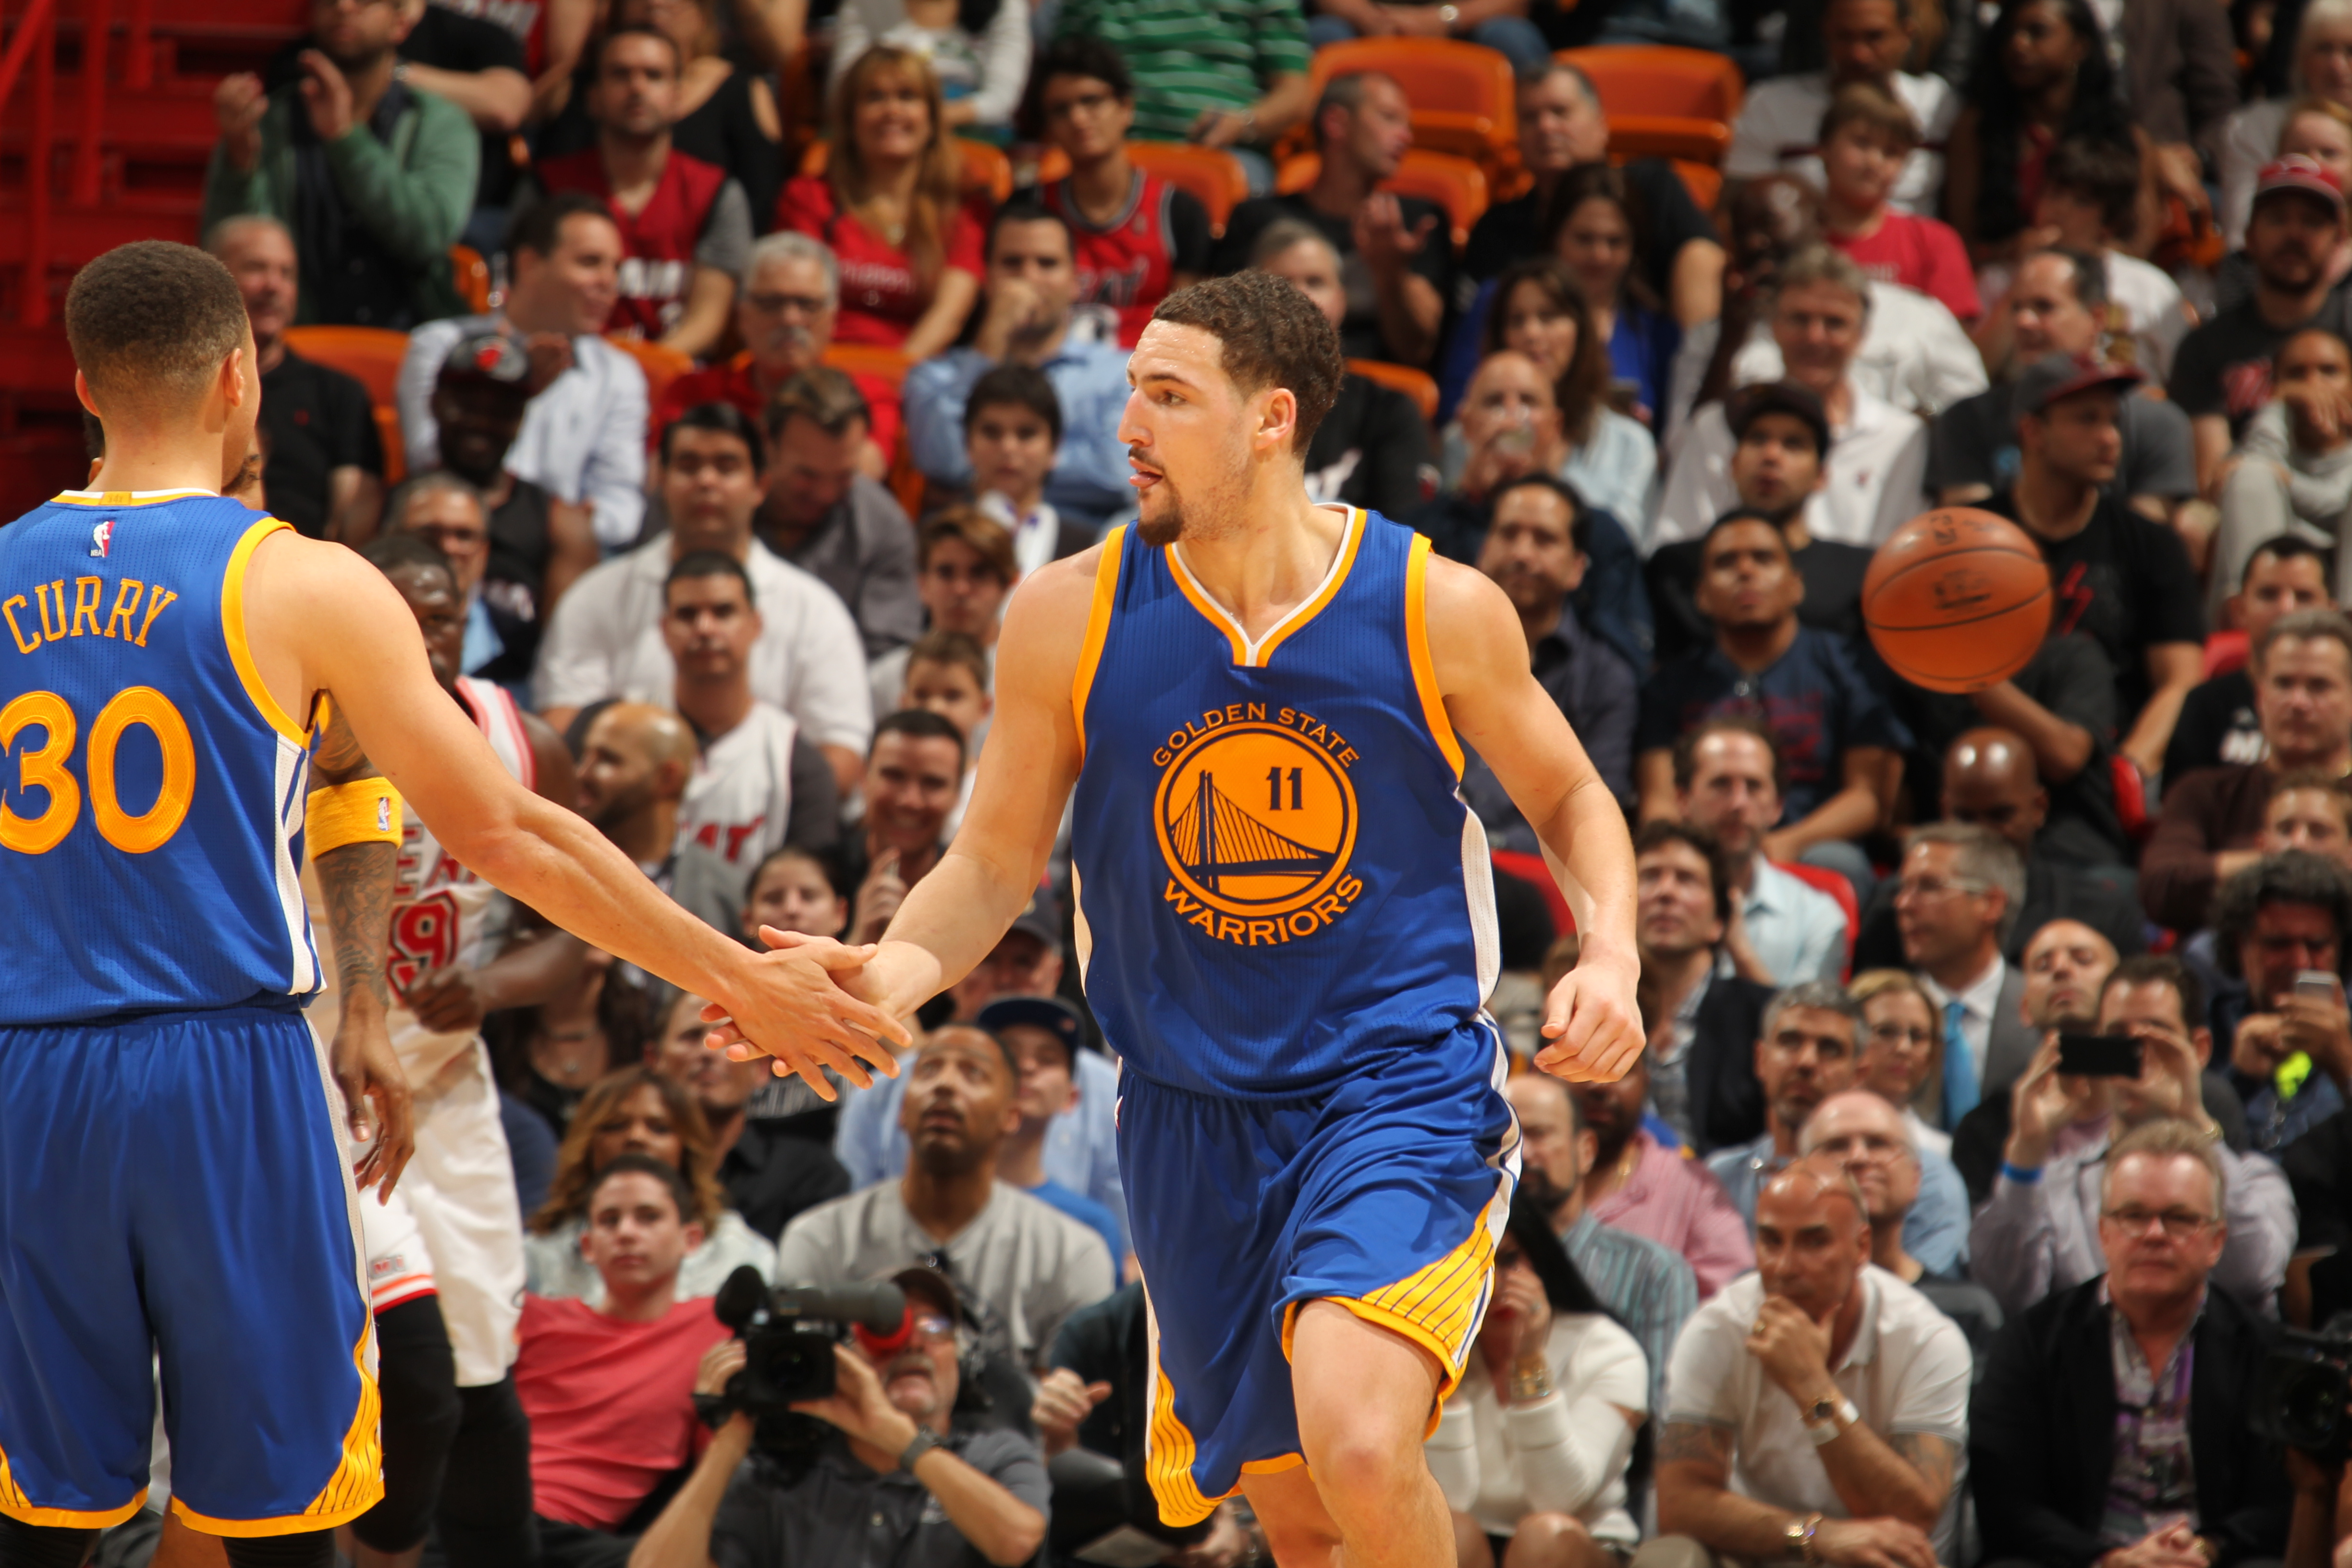 MIAMI, FL - FEBRUARY 24:  Klay Thompson #11 of the Golden State Warriors shakes hands with Stephen Curry #30 of the Golden State Warriors during the game against the Miami Heat on February 24, 2016 at American Airlines Arena in Miami, Florida. (Photo by I